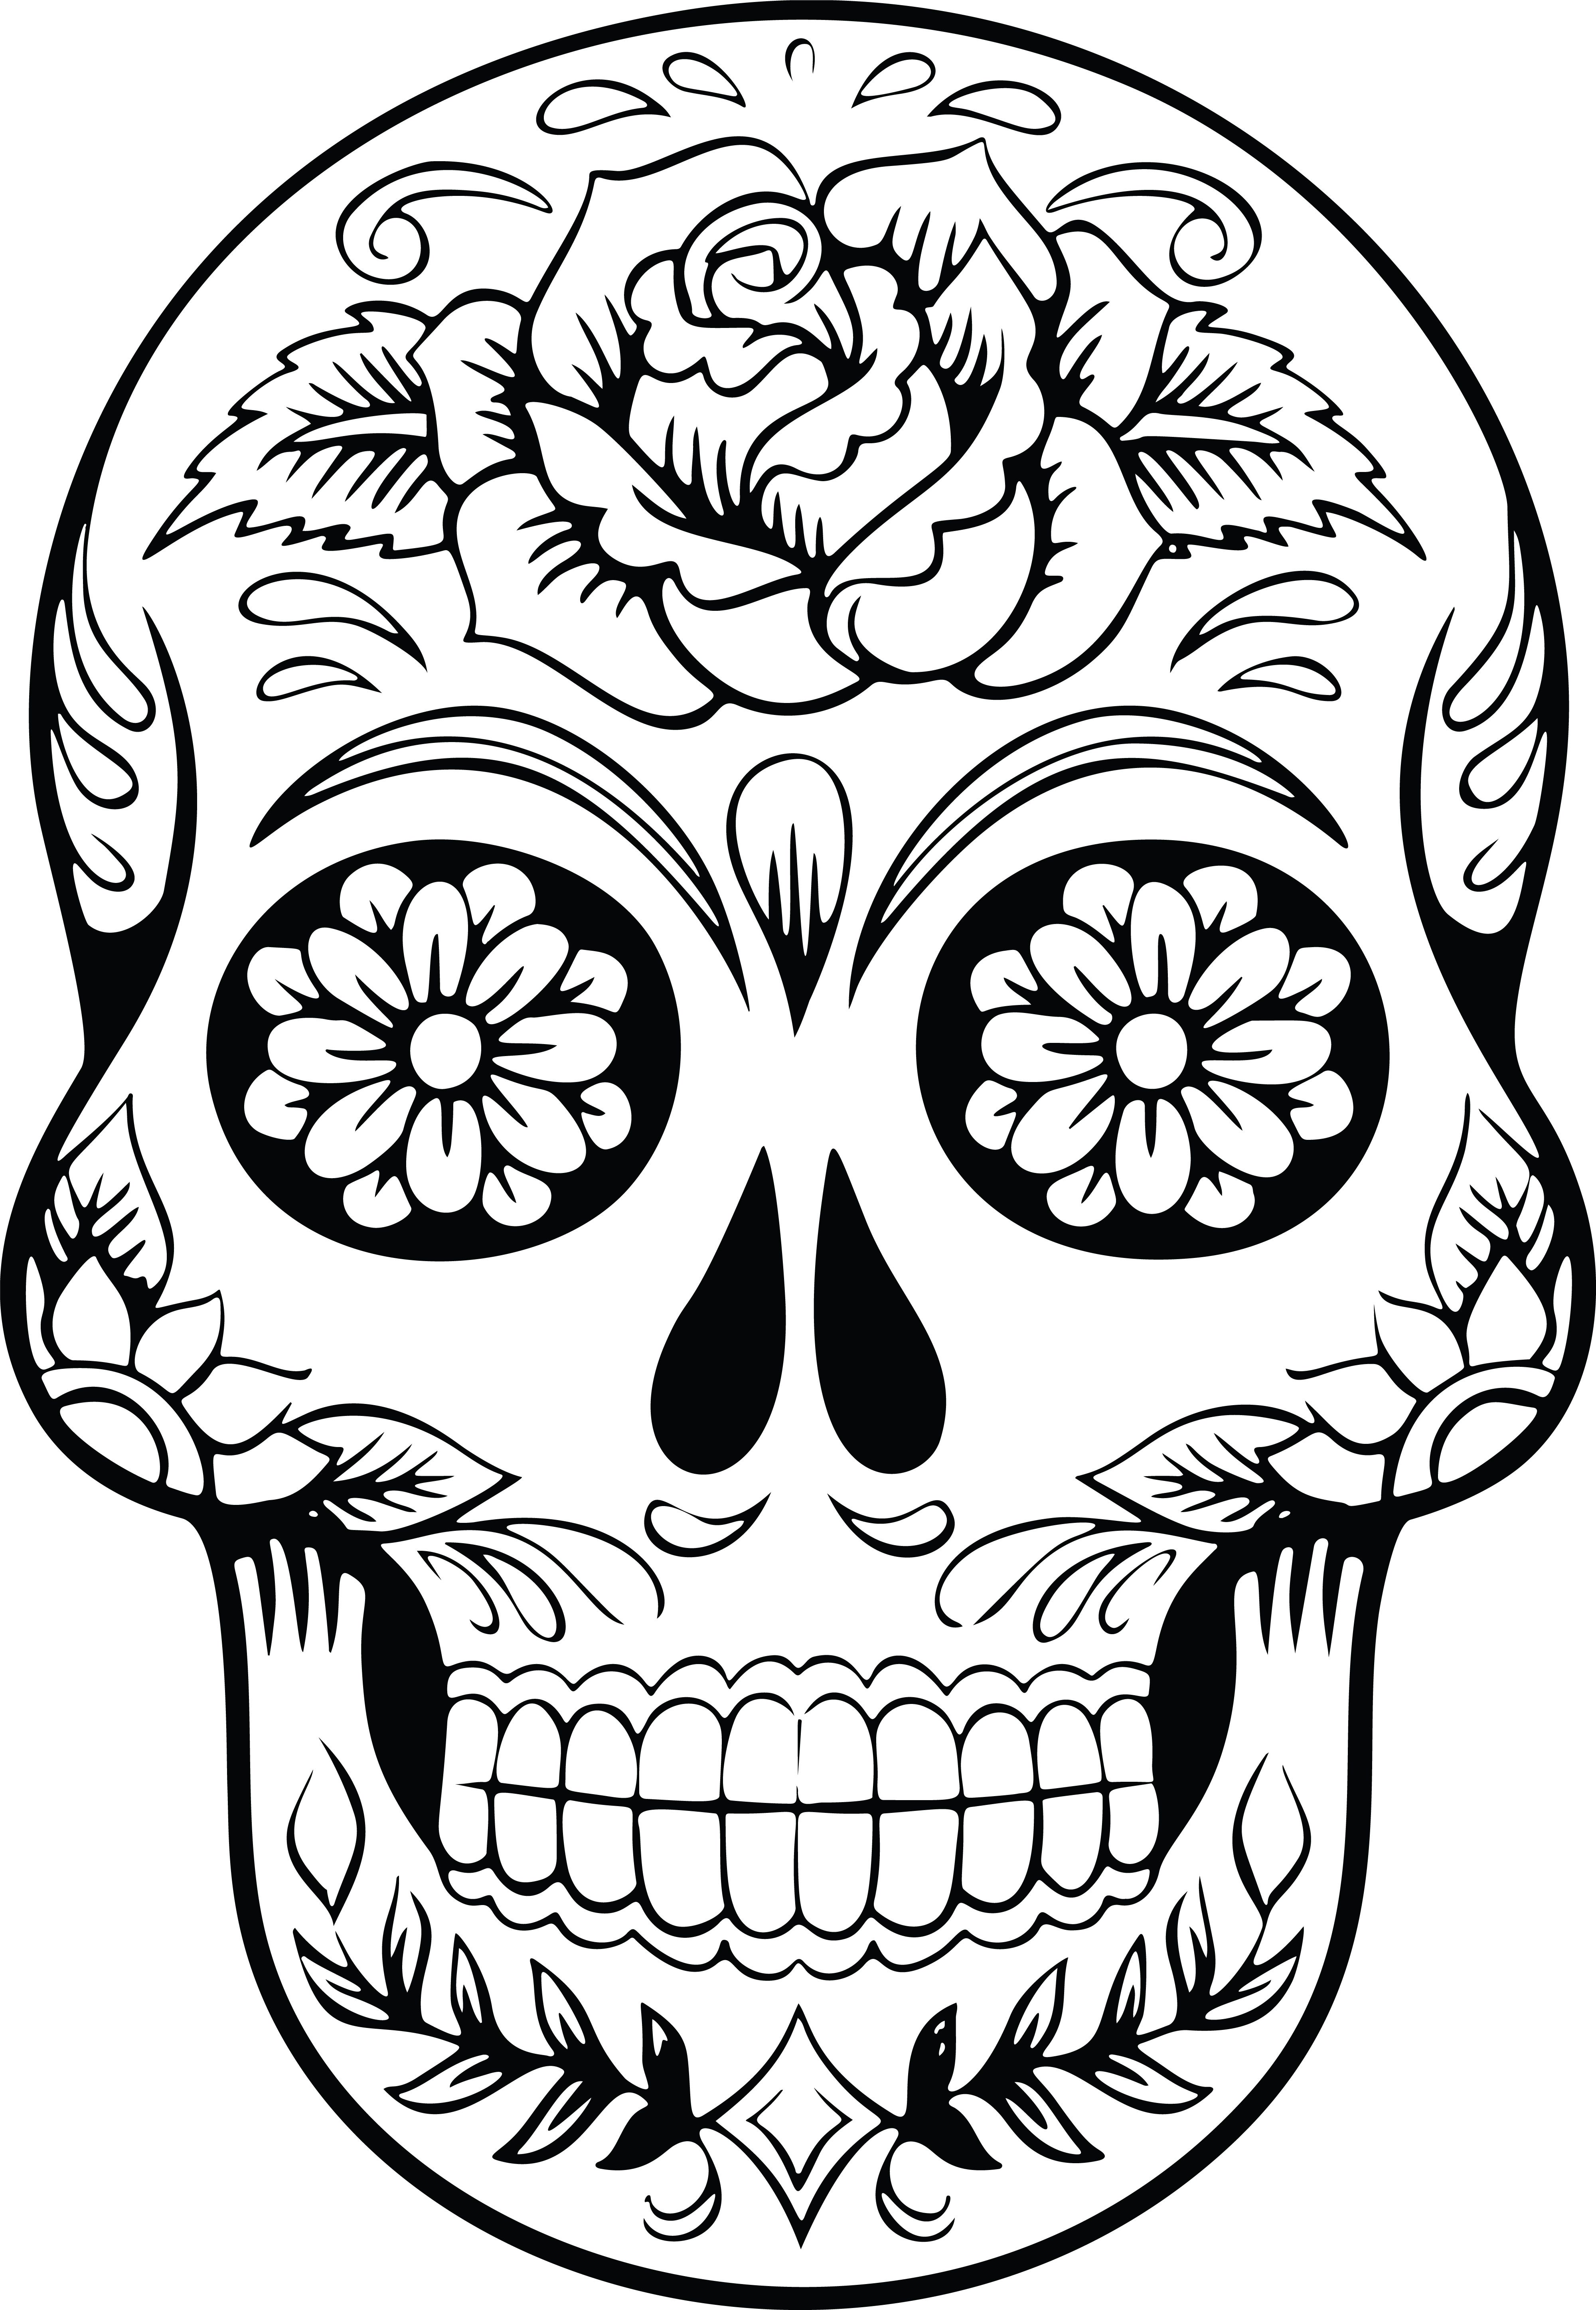 coloring ~ Coloring Pages Free Skull Anatomy Muscular Book.